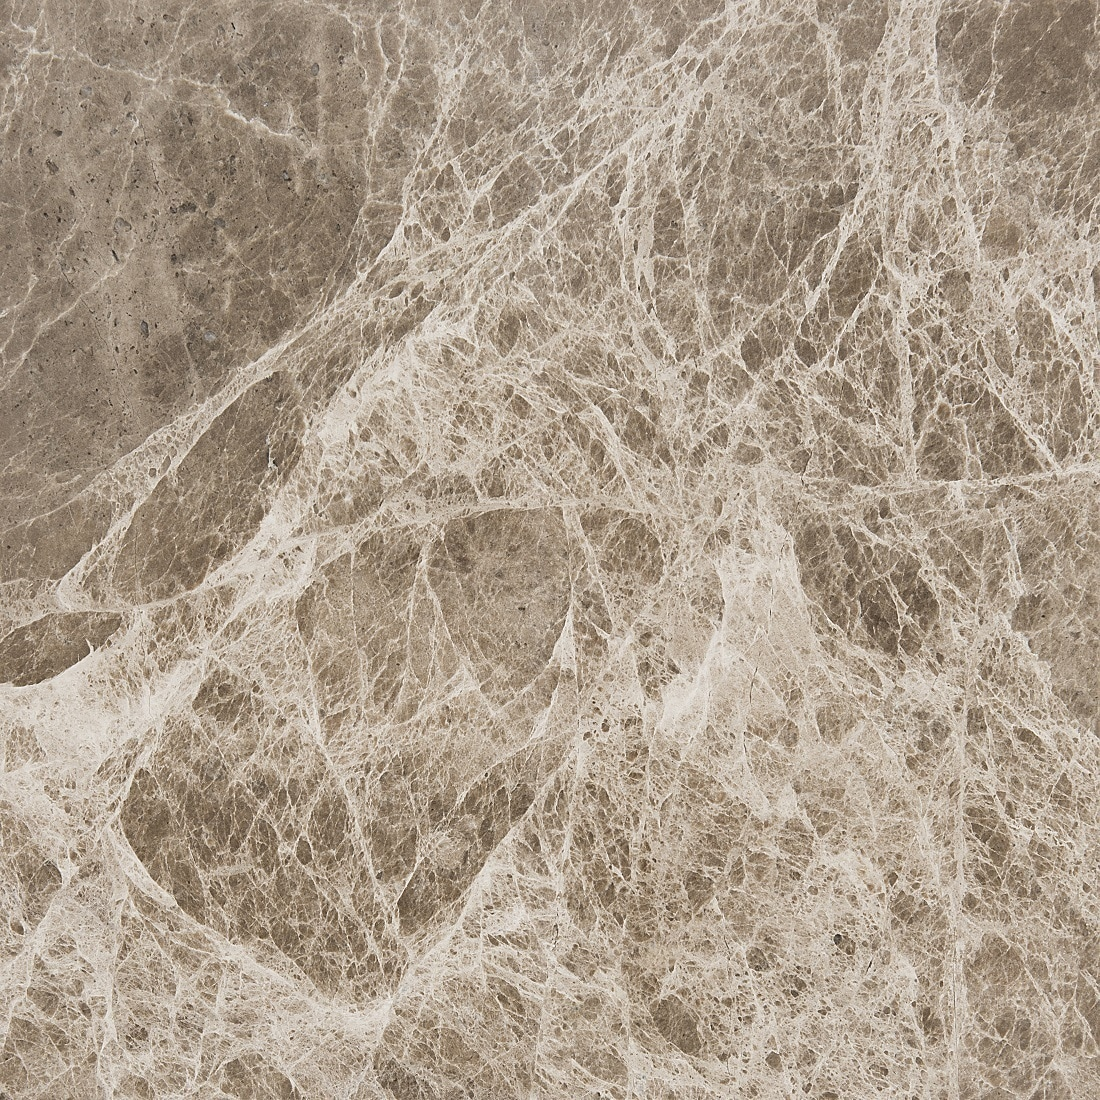 Marbletiledirect Cedar Emperador Brown Marble 12-inch x 12-inch x 3/8-inch Polished and Beveled Tiles